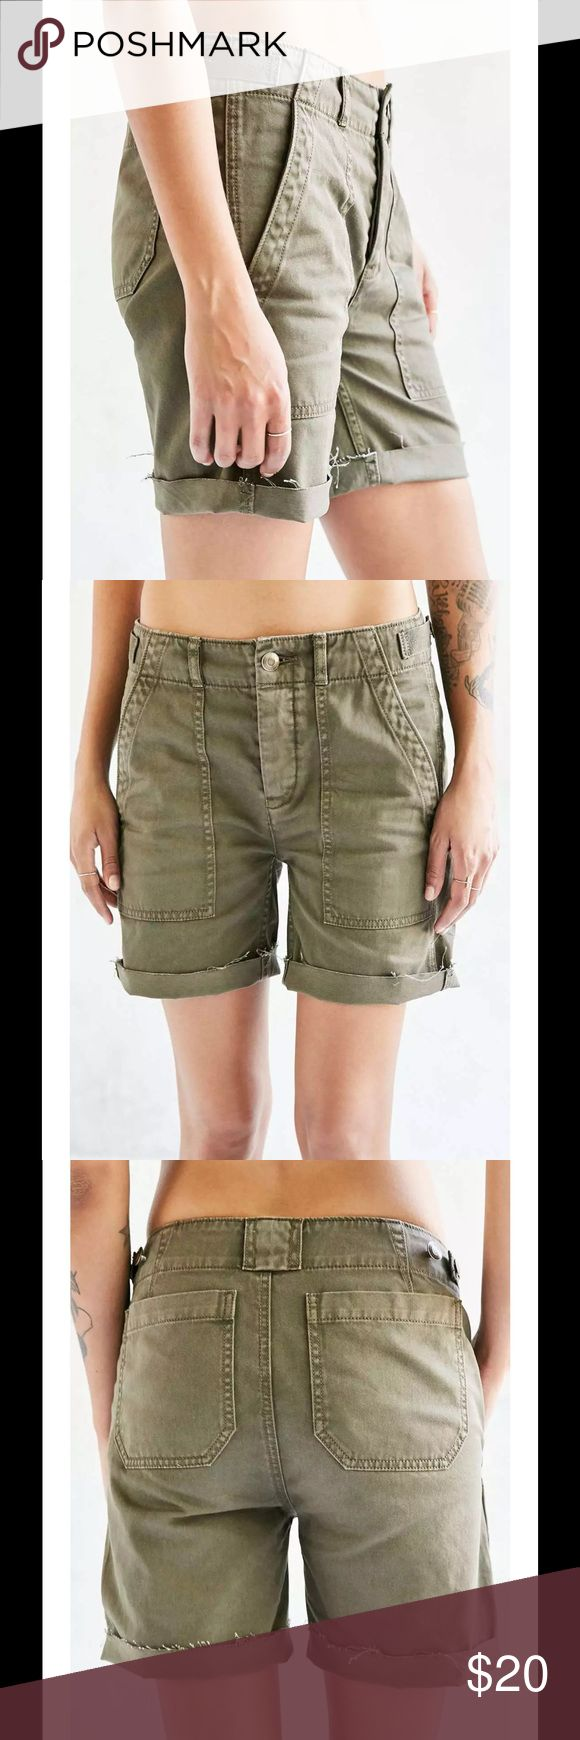 "NWT Urban Outfitters High Rise Army Shorts Modern longline military short from our modern-essential BDG collection. With a flattering fitted high-rise waist + slouchy straight-leg with long, cut-off hems you can cuff up or leave down. Finished with a hidden button fly at the front + side buttons that adjust the waist. NEW!   Content + Care - Cotton               - Machine wash - Imported           Size + Fit Size 2            - Inseam: 7""        - Leg opening: 10.75""     Shoot over an offer…"